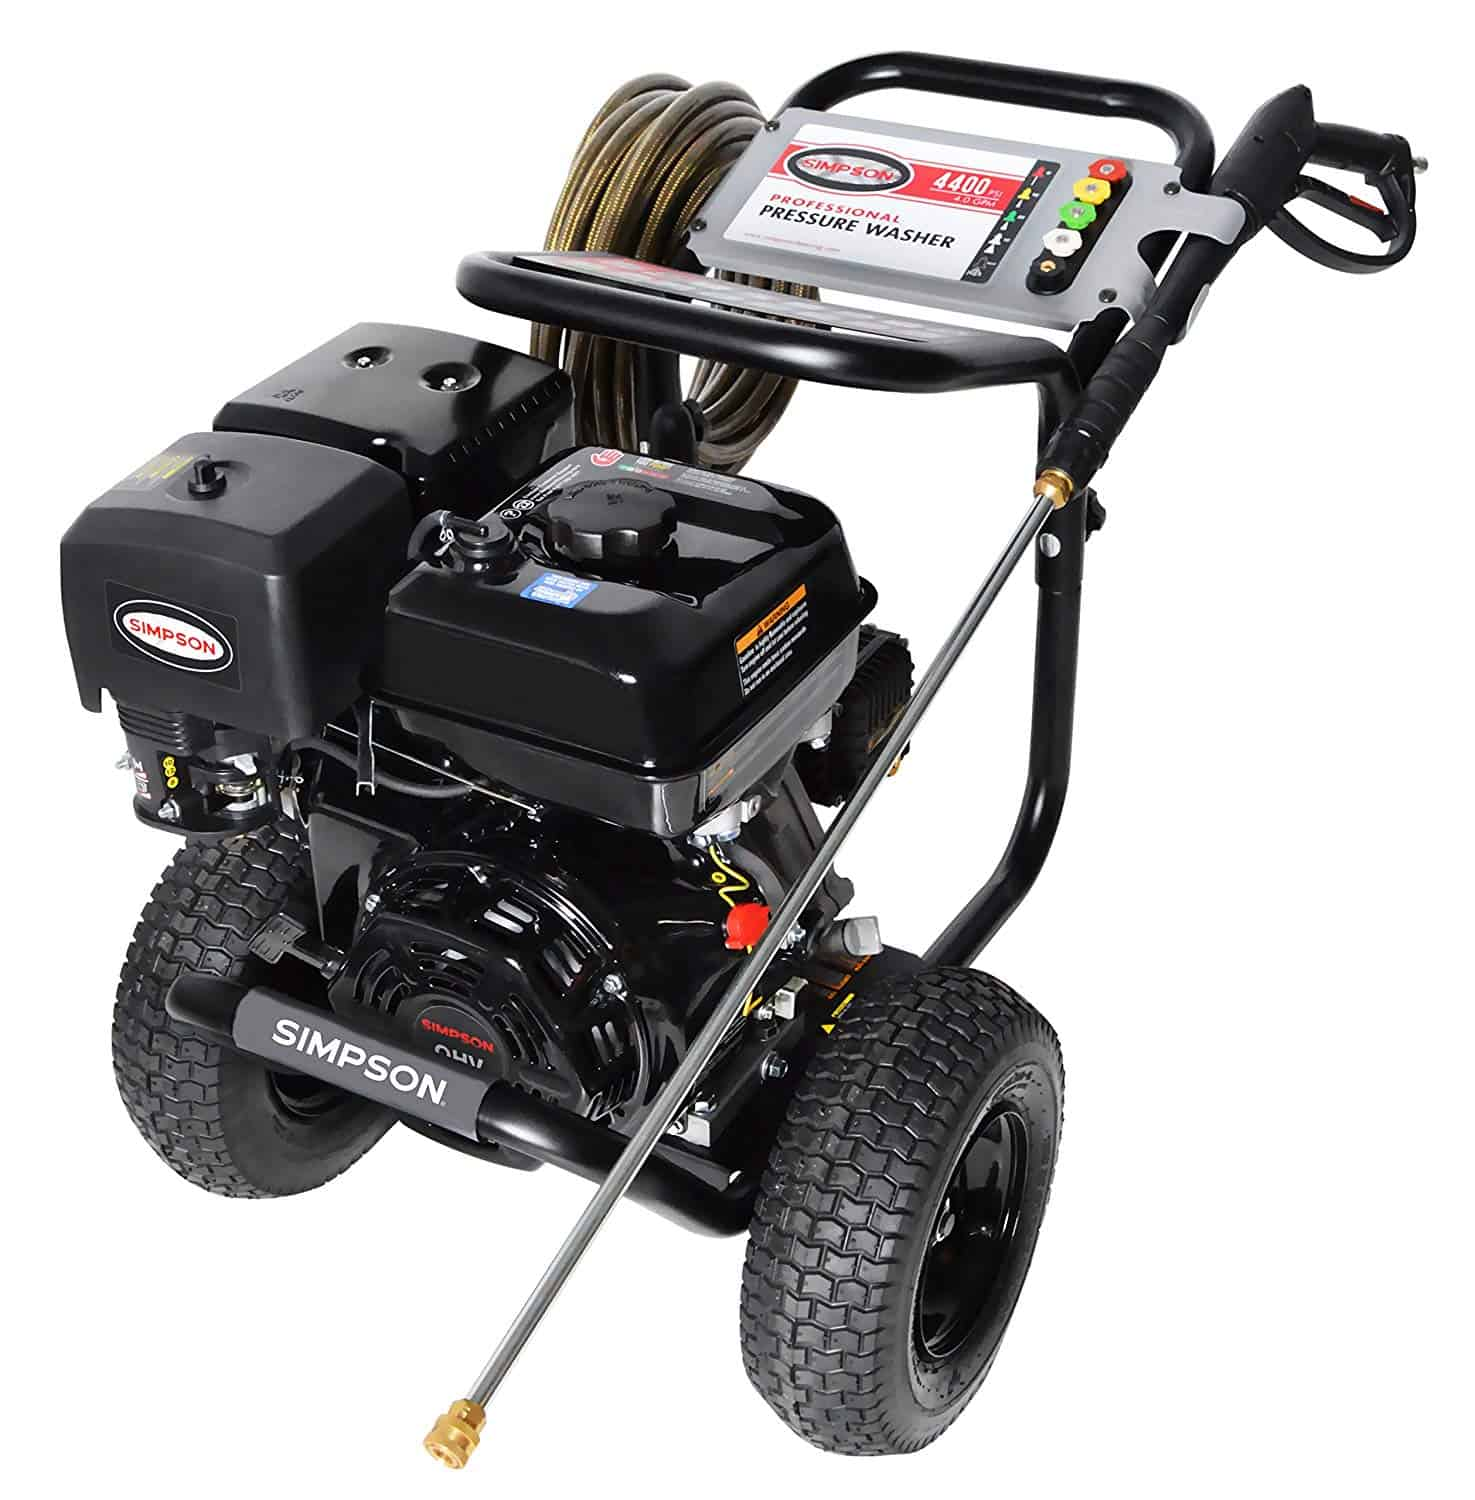 Simpson Cleaning 60843 Powershot 4400Psi Gas Pressure Washer